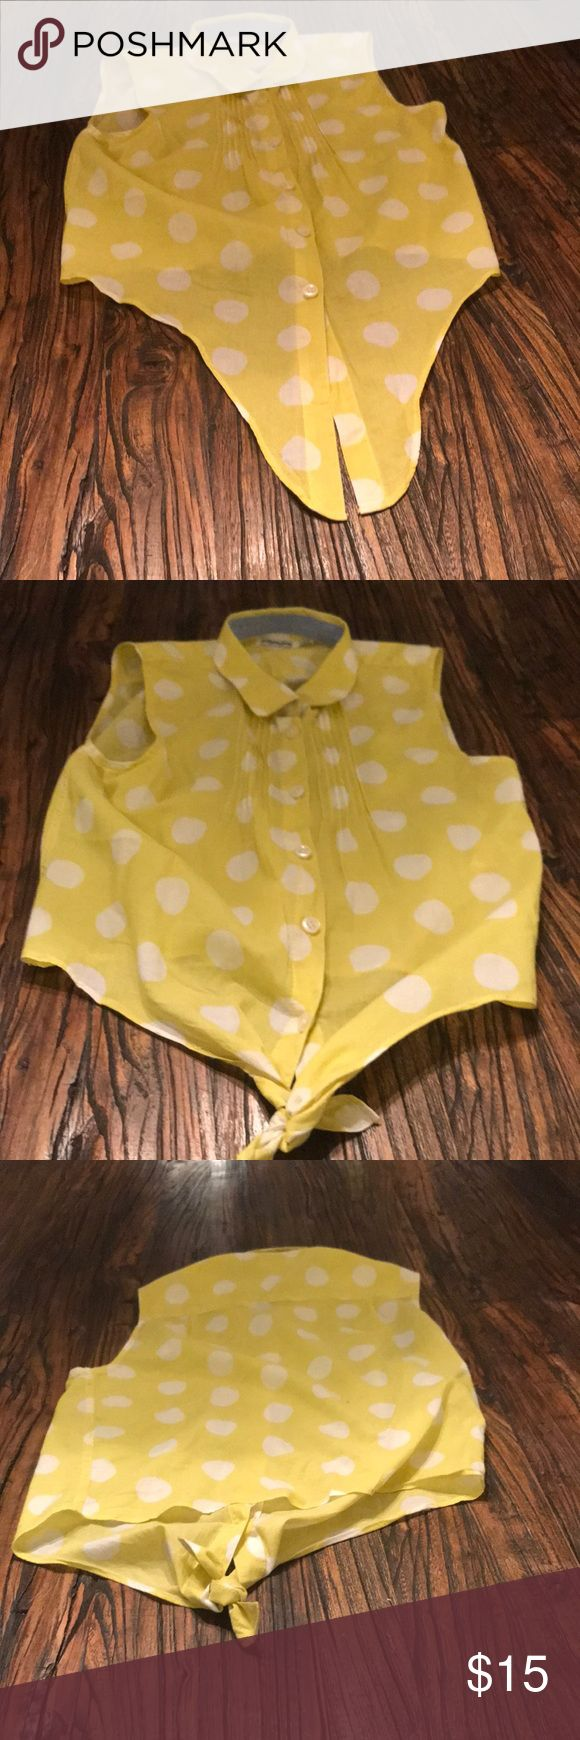 Yellow polka dot vest Polka dot , johnnie b , Jackets & Coats Vests